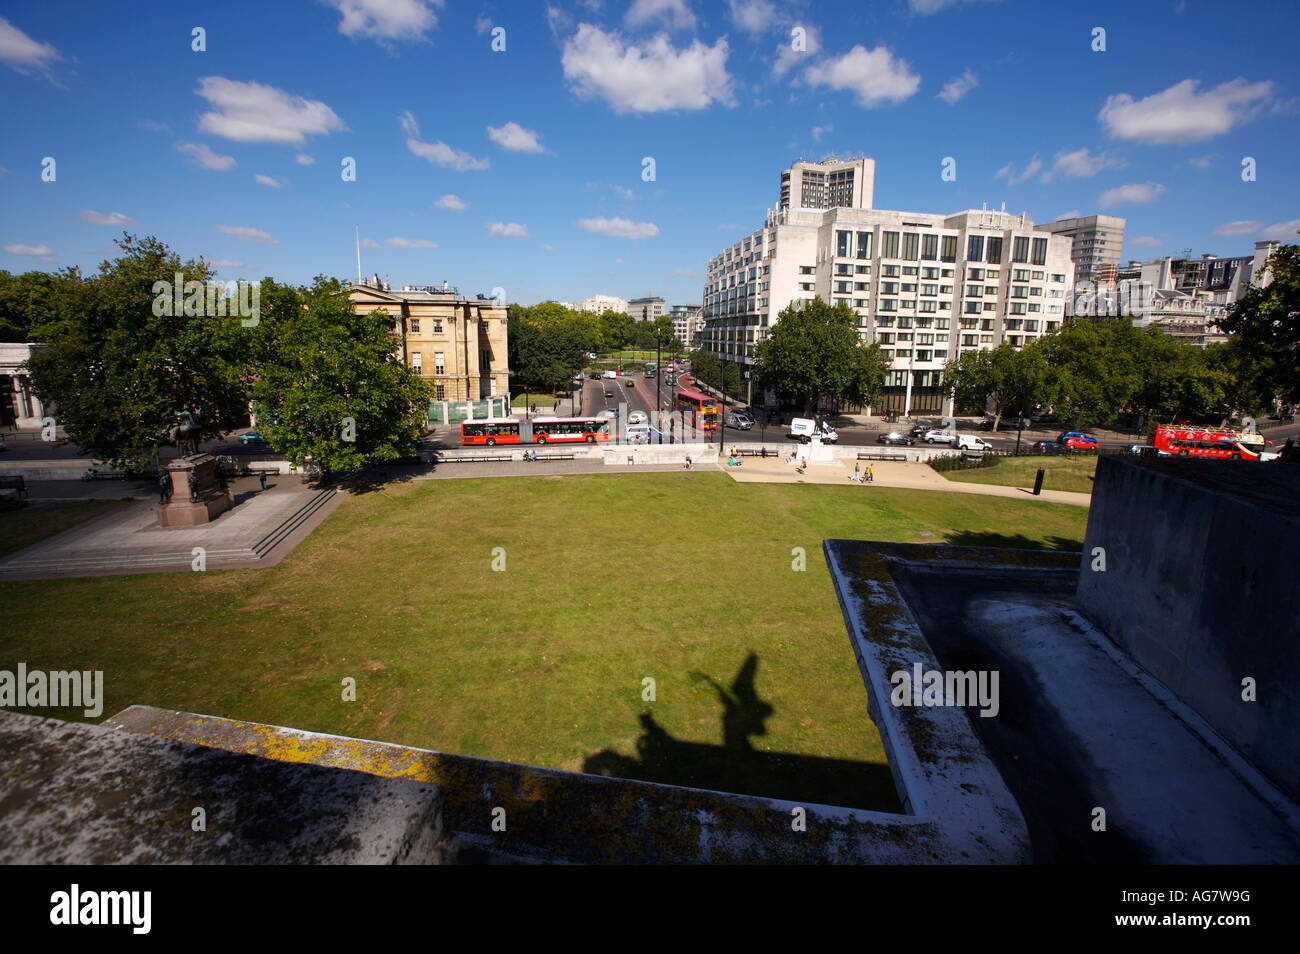 The view from The Wellington Arch on Hyde Park Corner in London UK towrads Park Lane and Apsley House - Stock Image